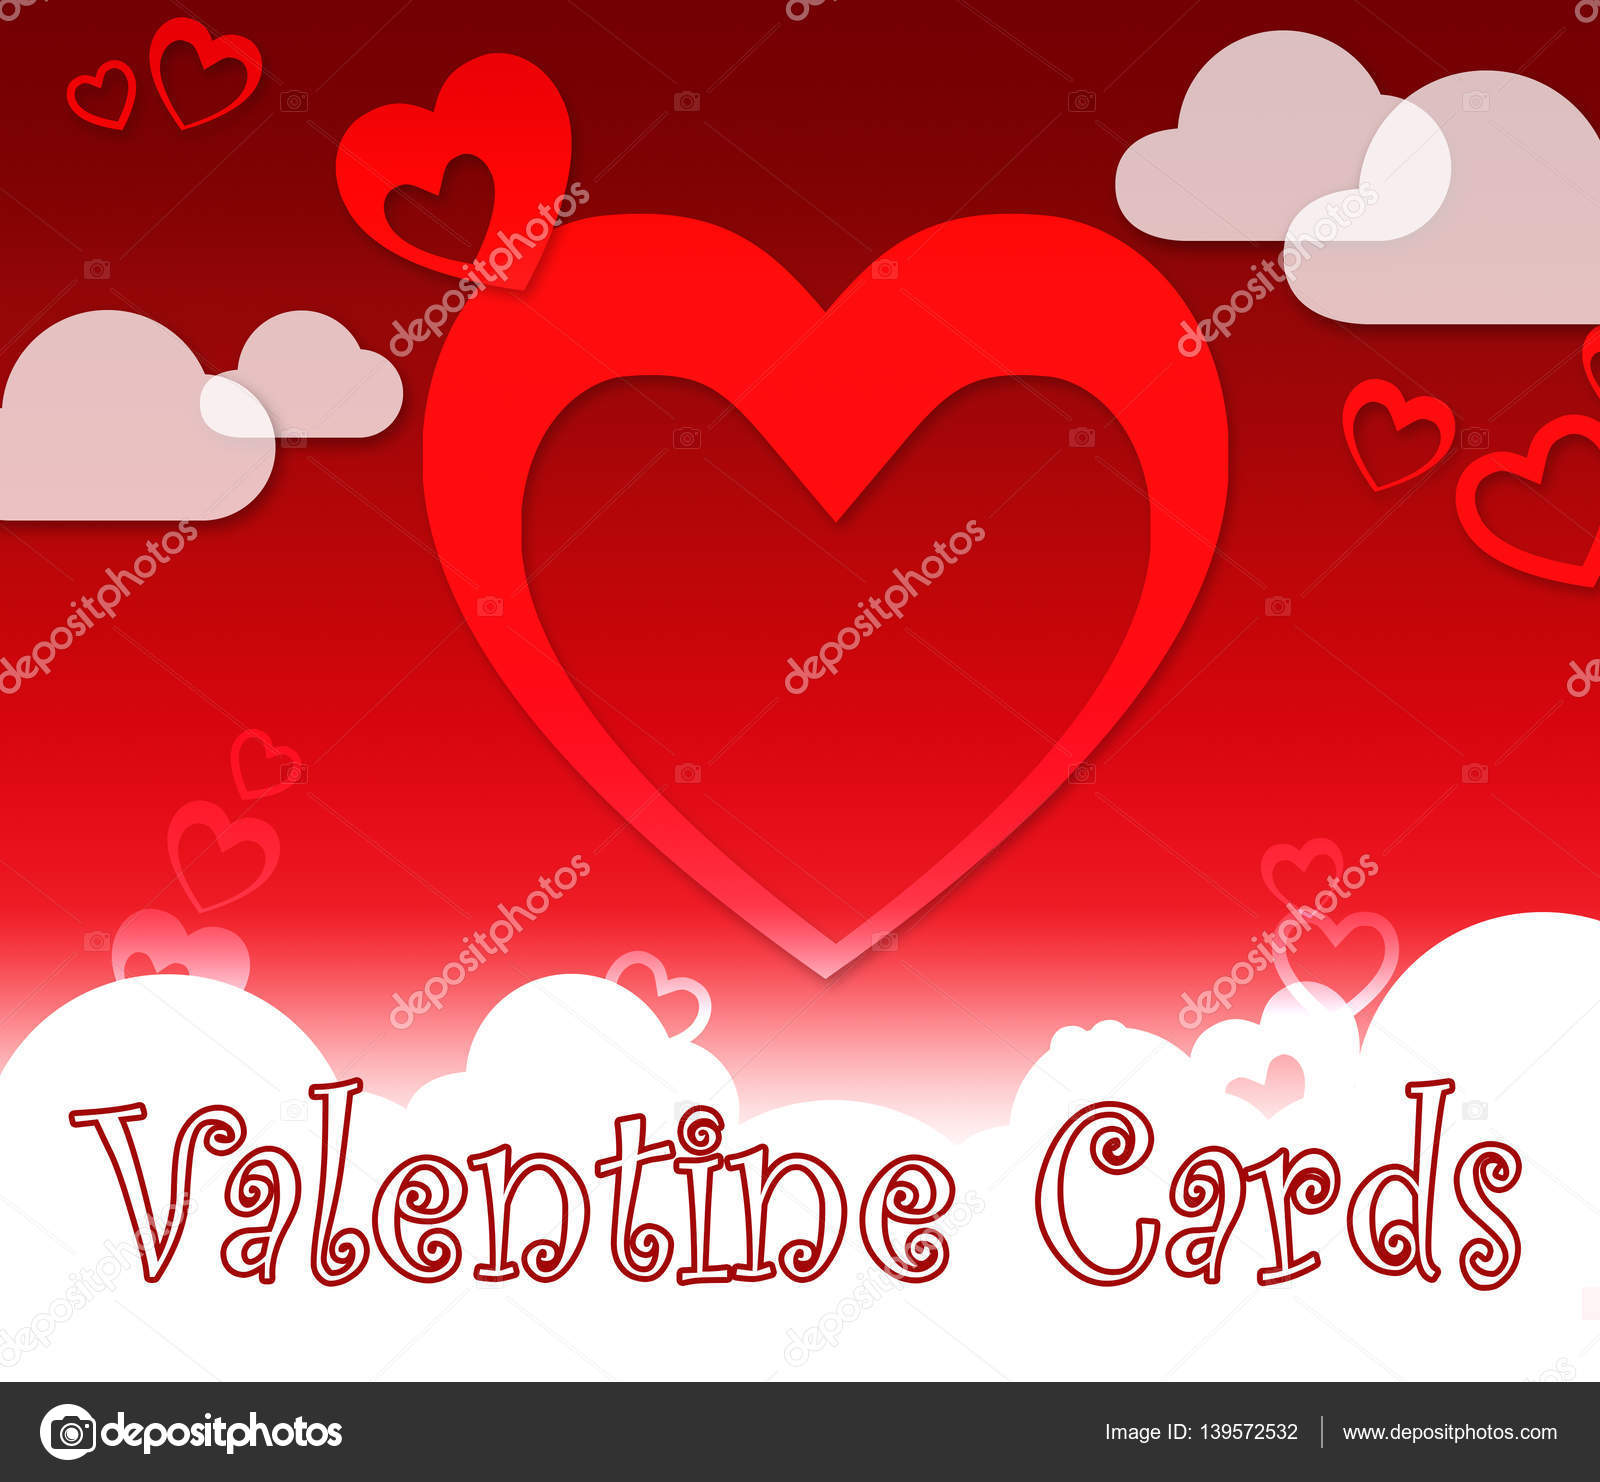 Valentine cards shows romantic greetings and adoration stock photo valentine cards shows romantic greetings and adoration stock photo m4hsunfo